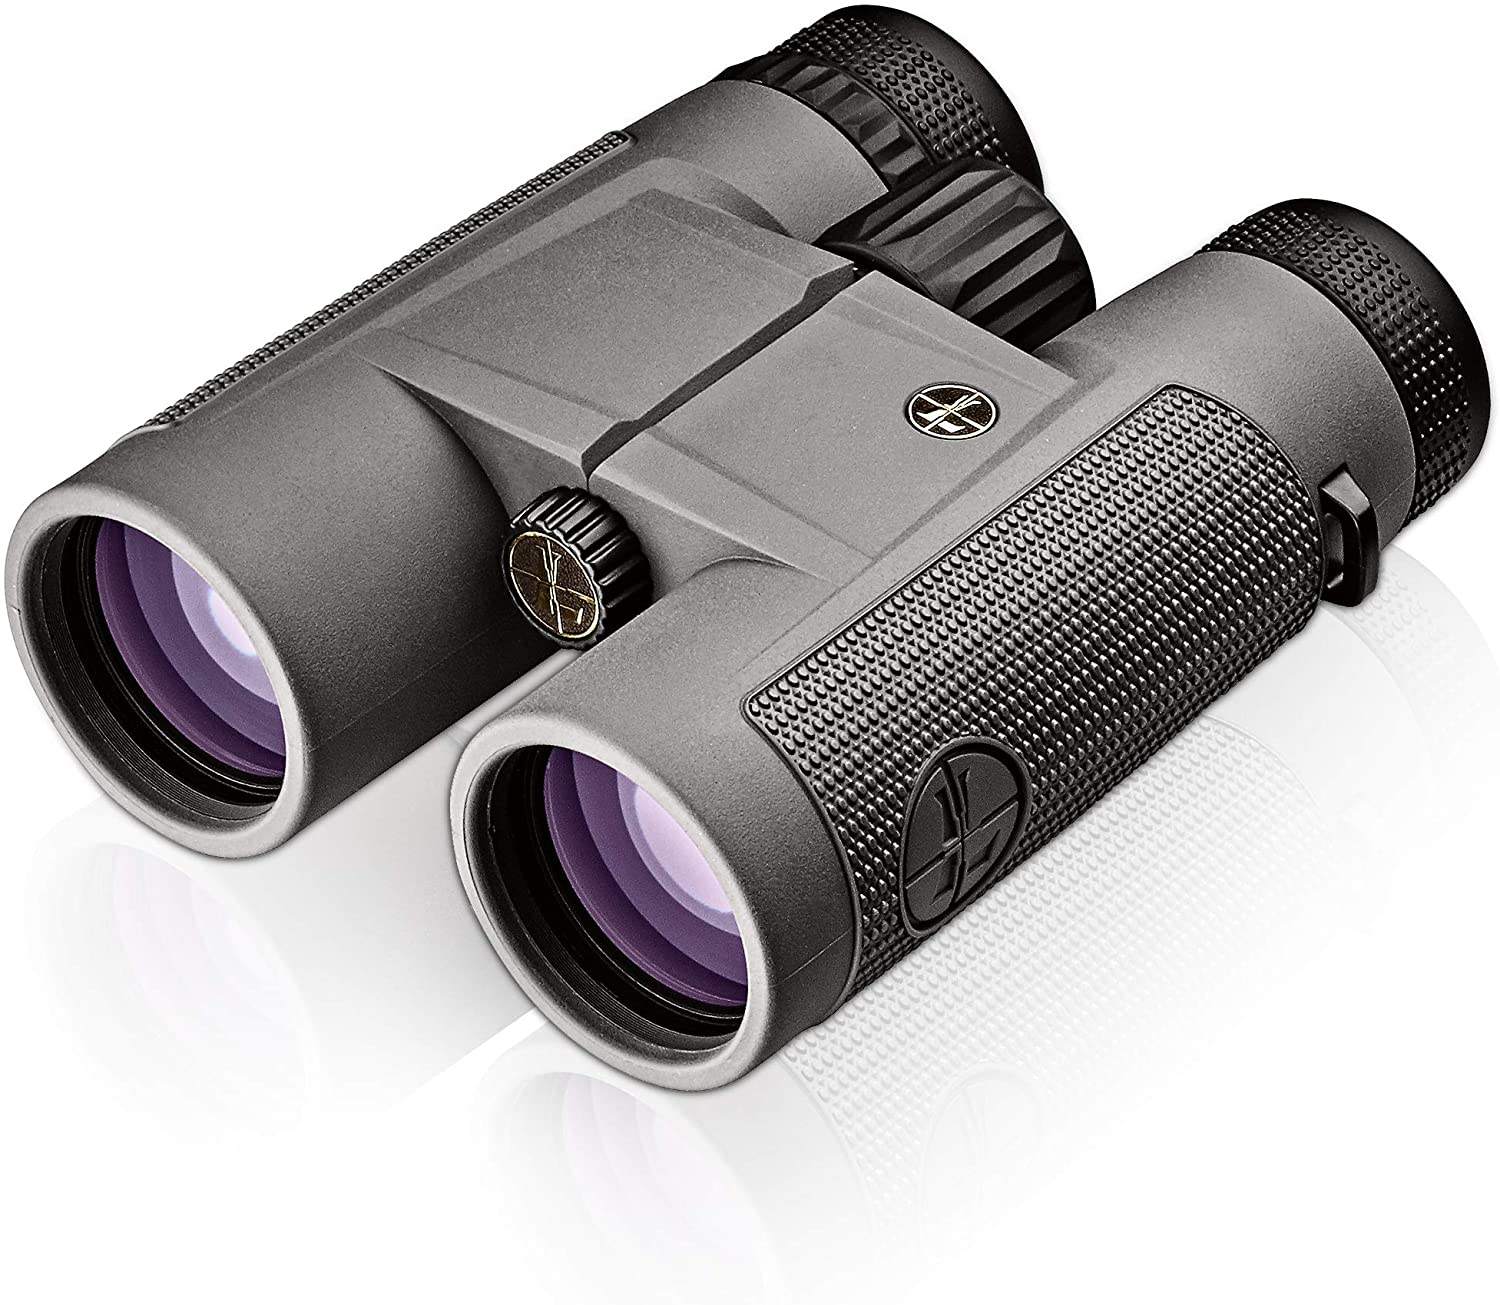 Top 10 Best Compact Binoculars 2021 Reviews 5